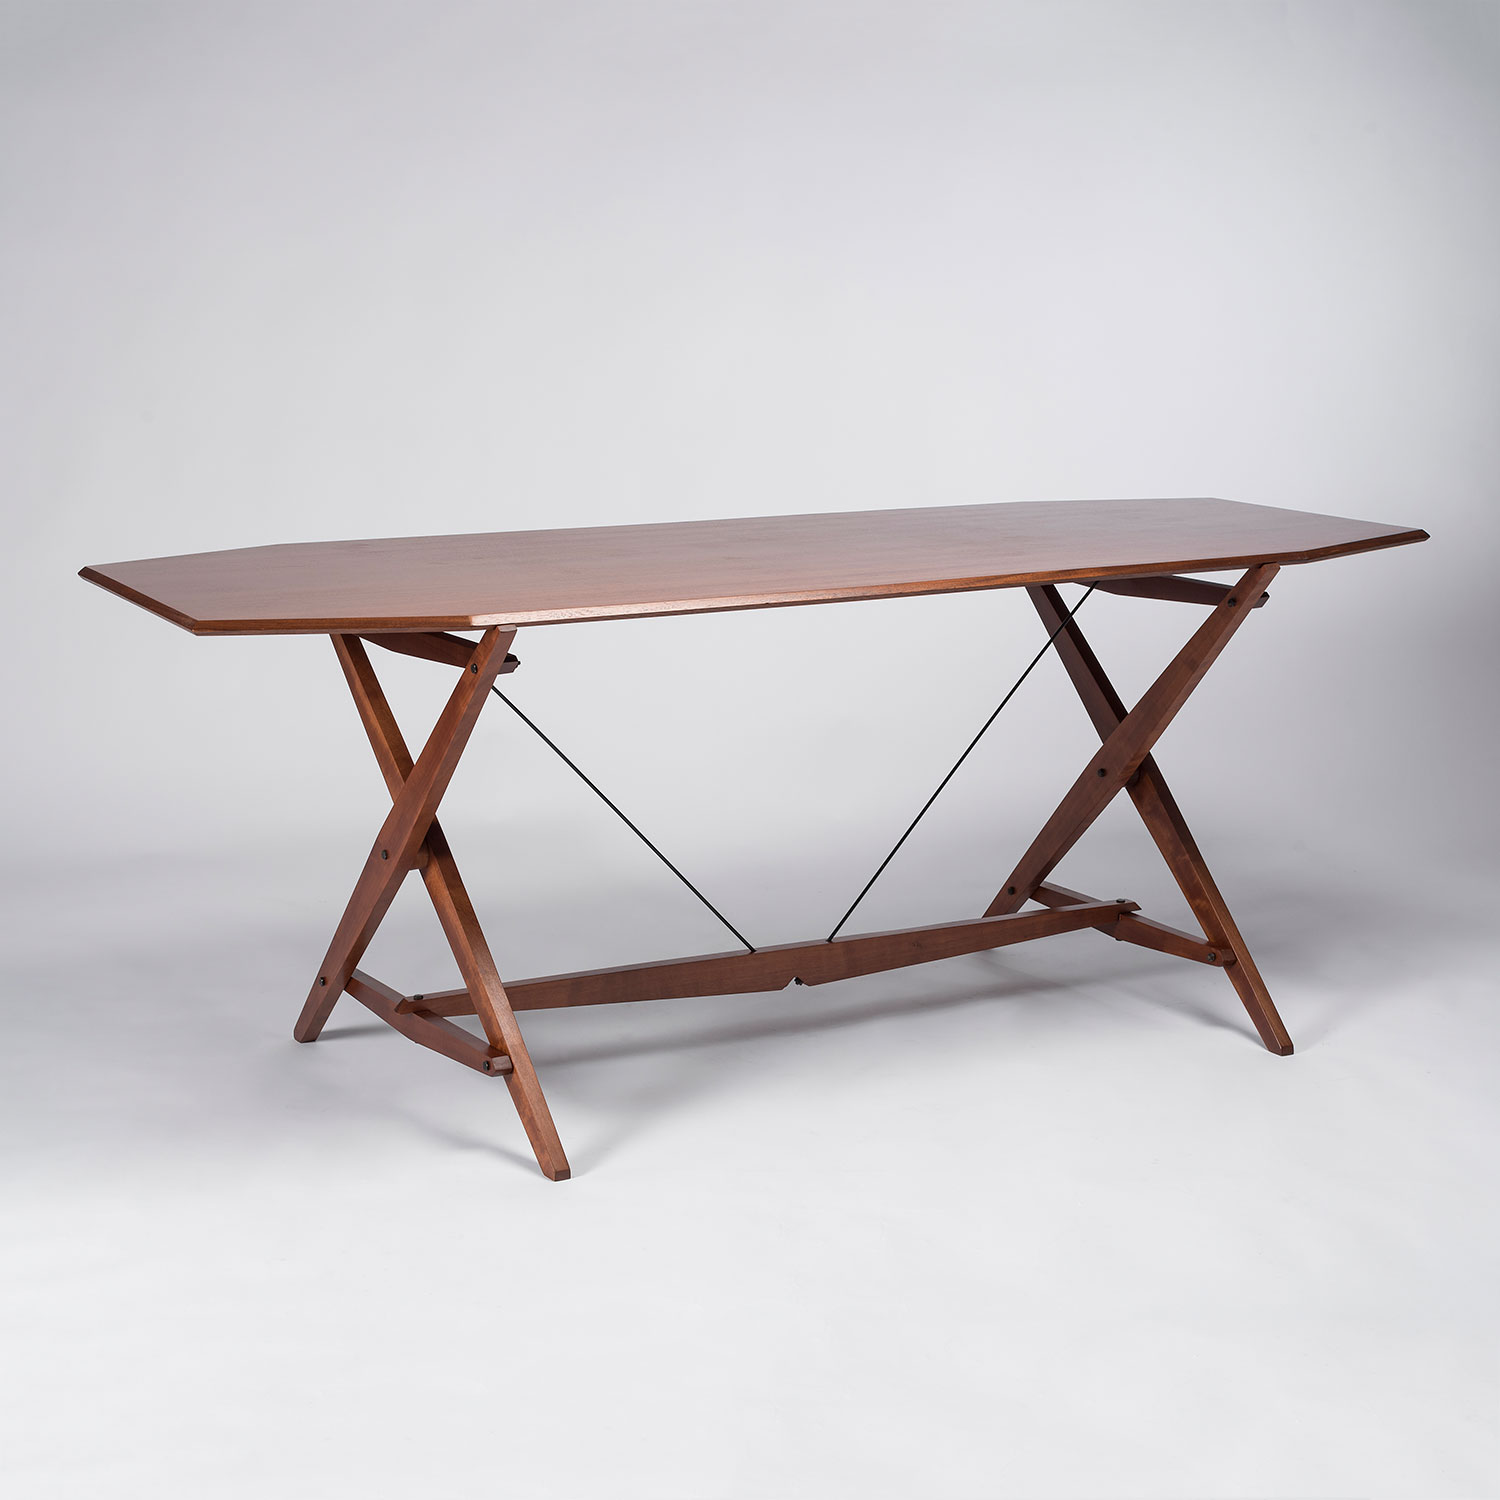 Franco Albini |  TL2 table